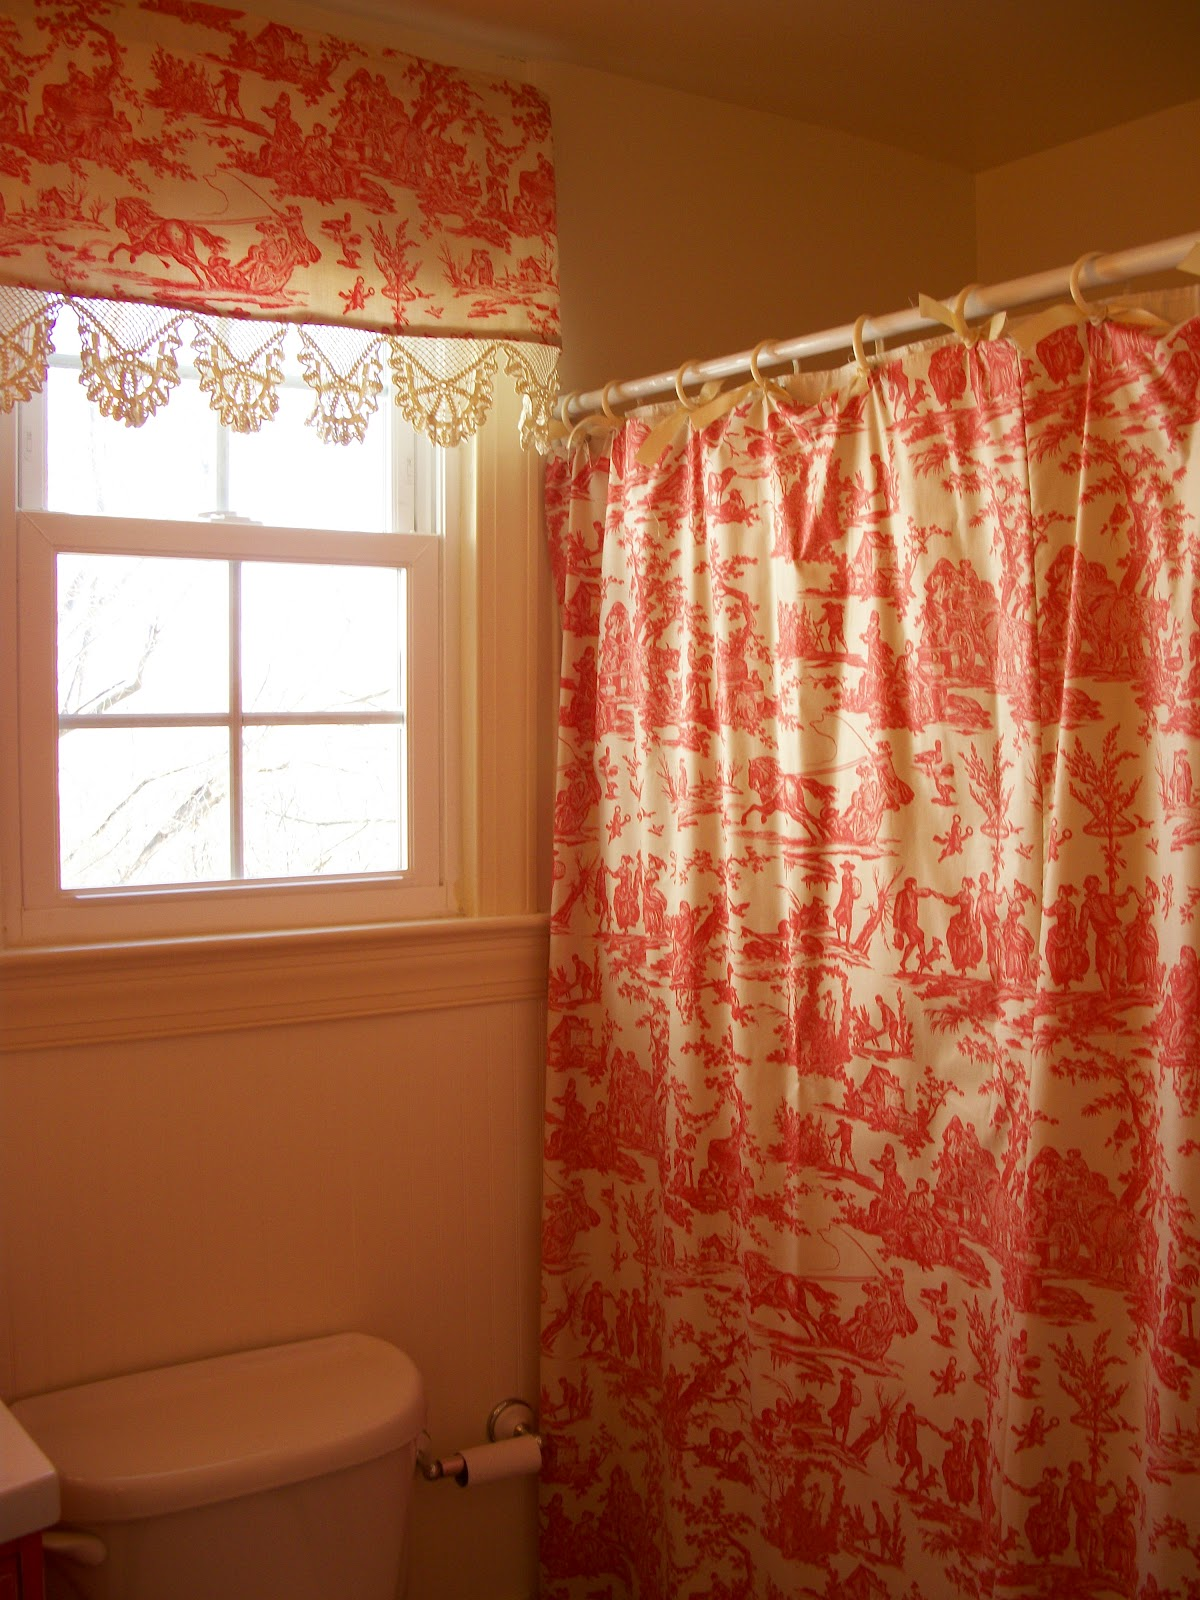 Bathroom window curtains with matching shower curtain - Red Toile Shower Curtain And Matching Valance